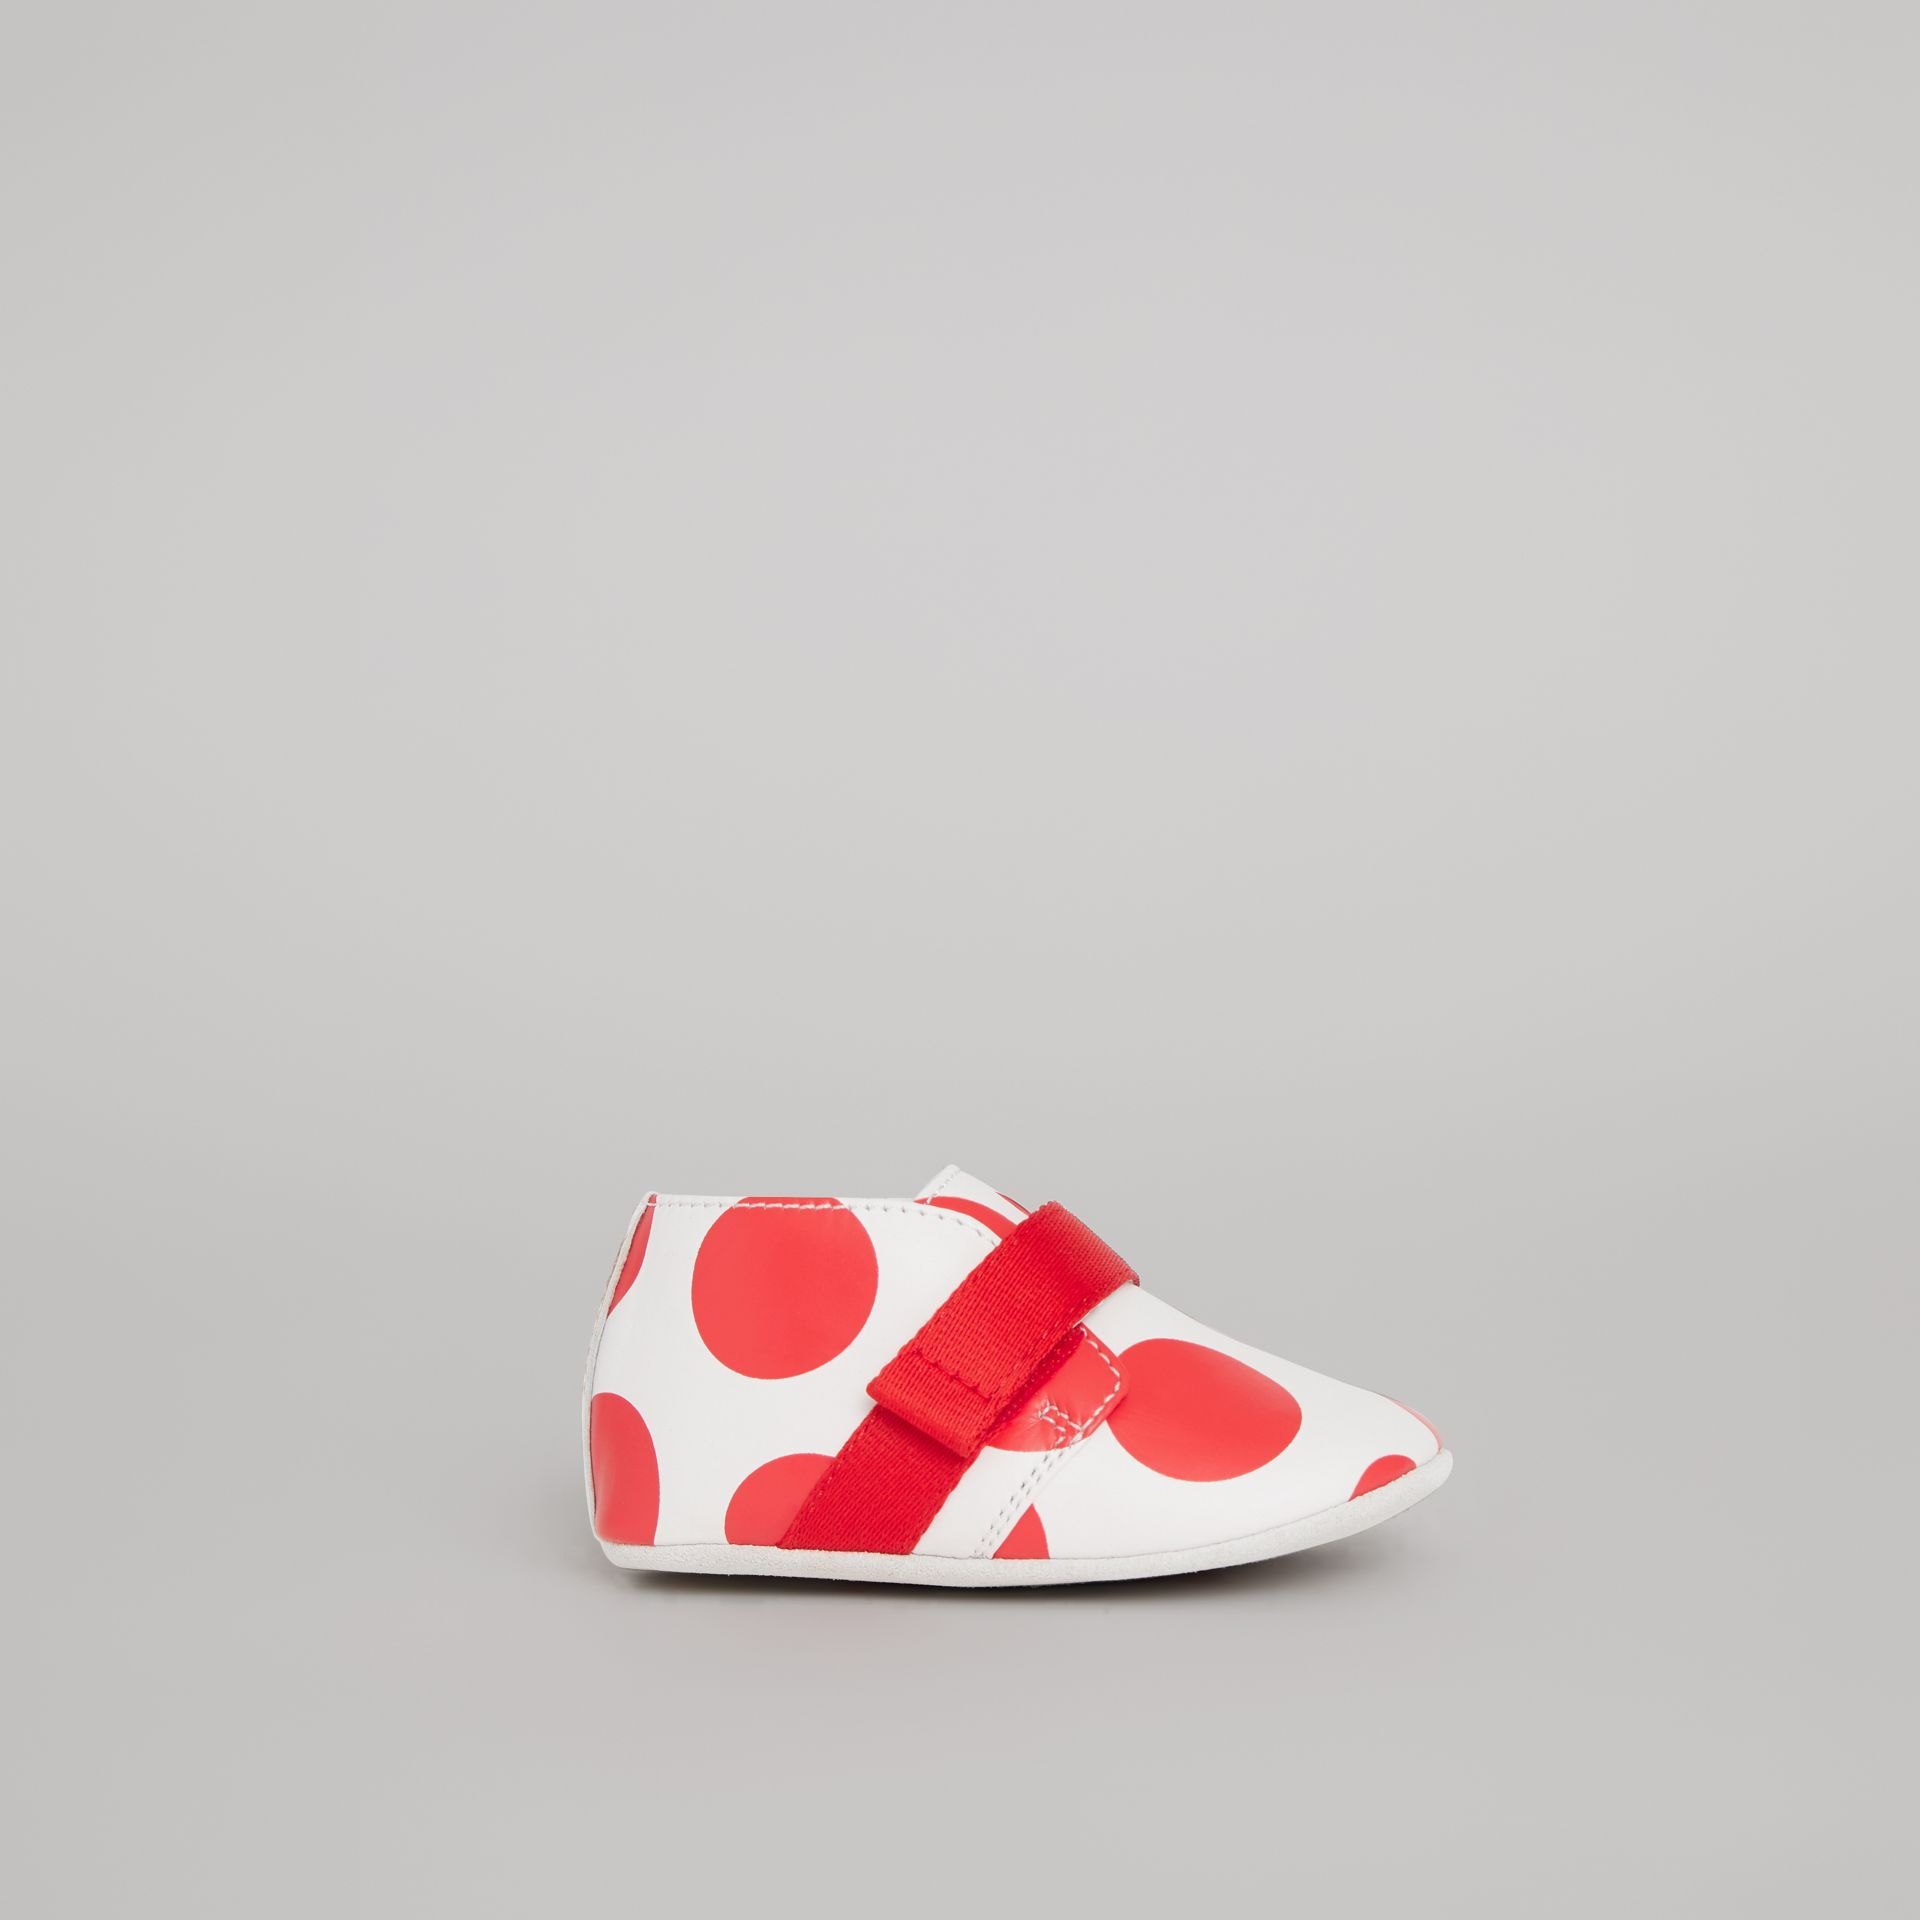 Spot Print Leather Shoes in Bright Red - Children | Burberry United States - gallery image 3